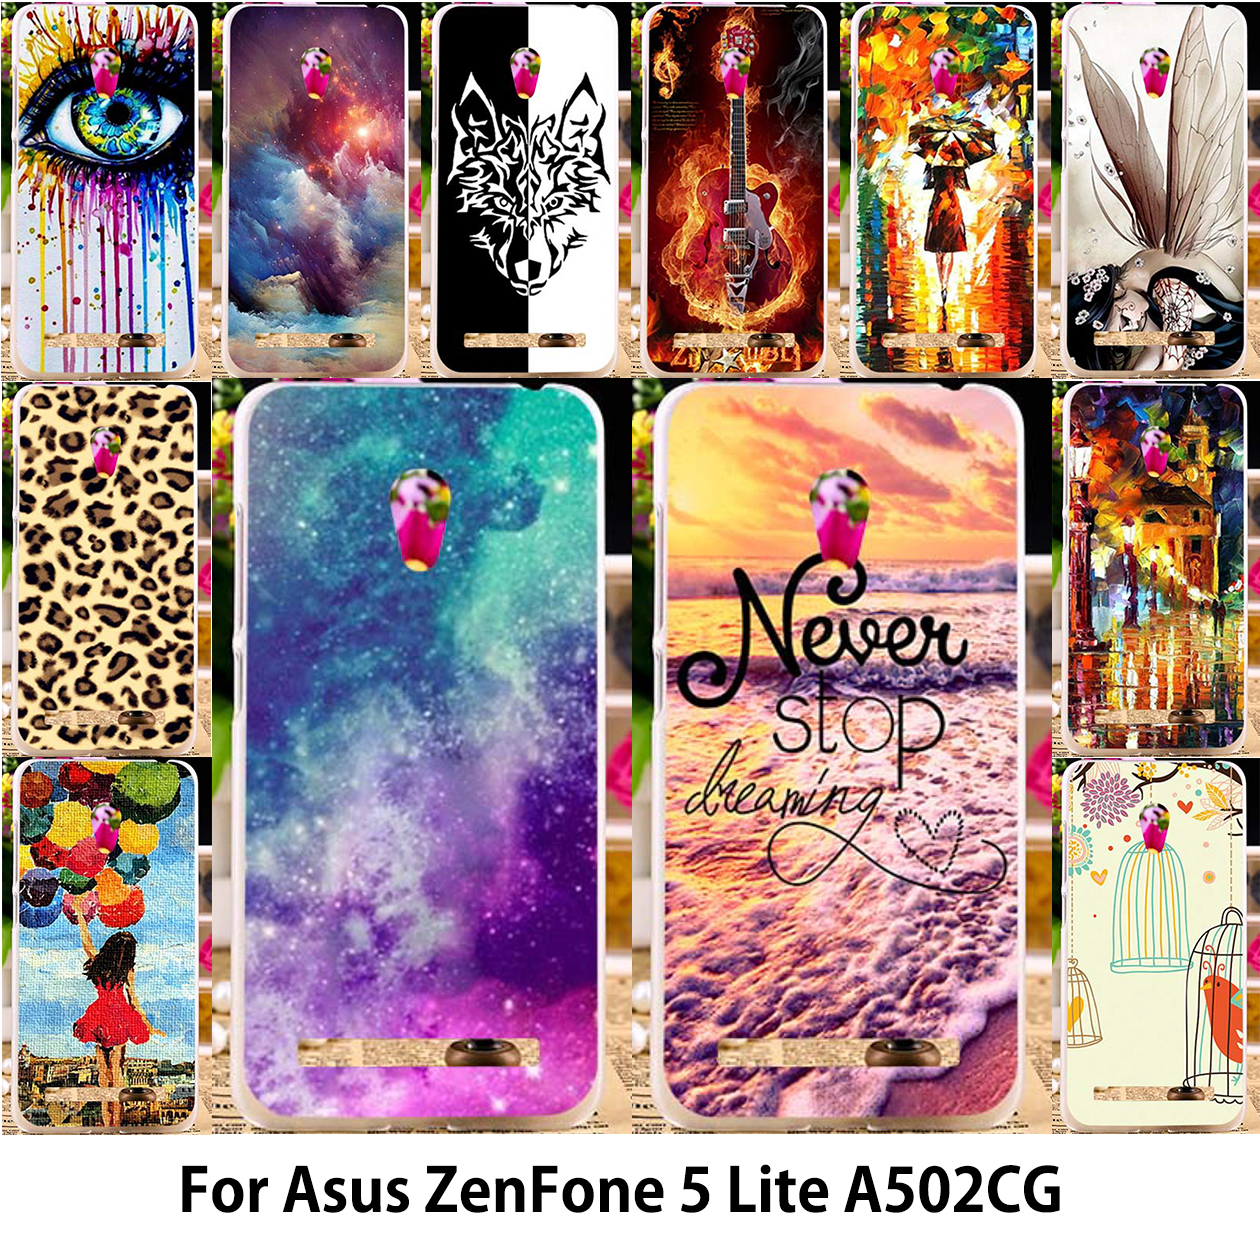 "Abstract Painted Mobile Phone Cases For Asus ZenFone 5 Lite Case ASUS_T00K A502CG ZenFone5 Lite 5.0"" Silicon Soft TPU Back Cover(China (Mainland))"